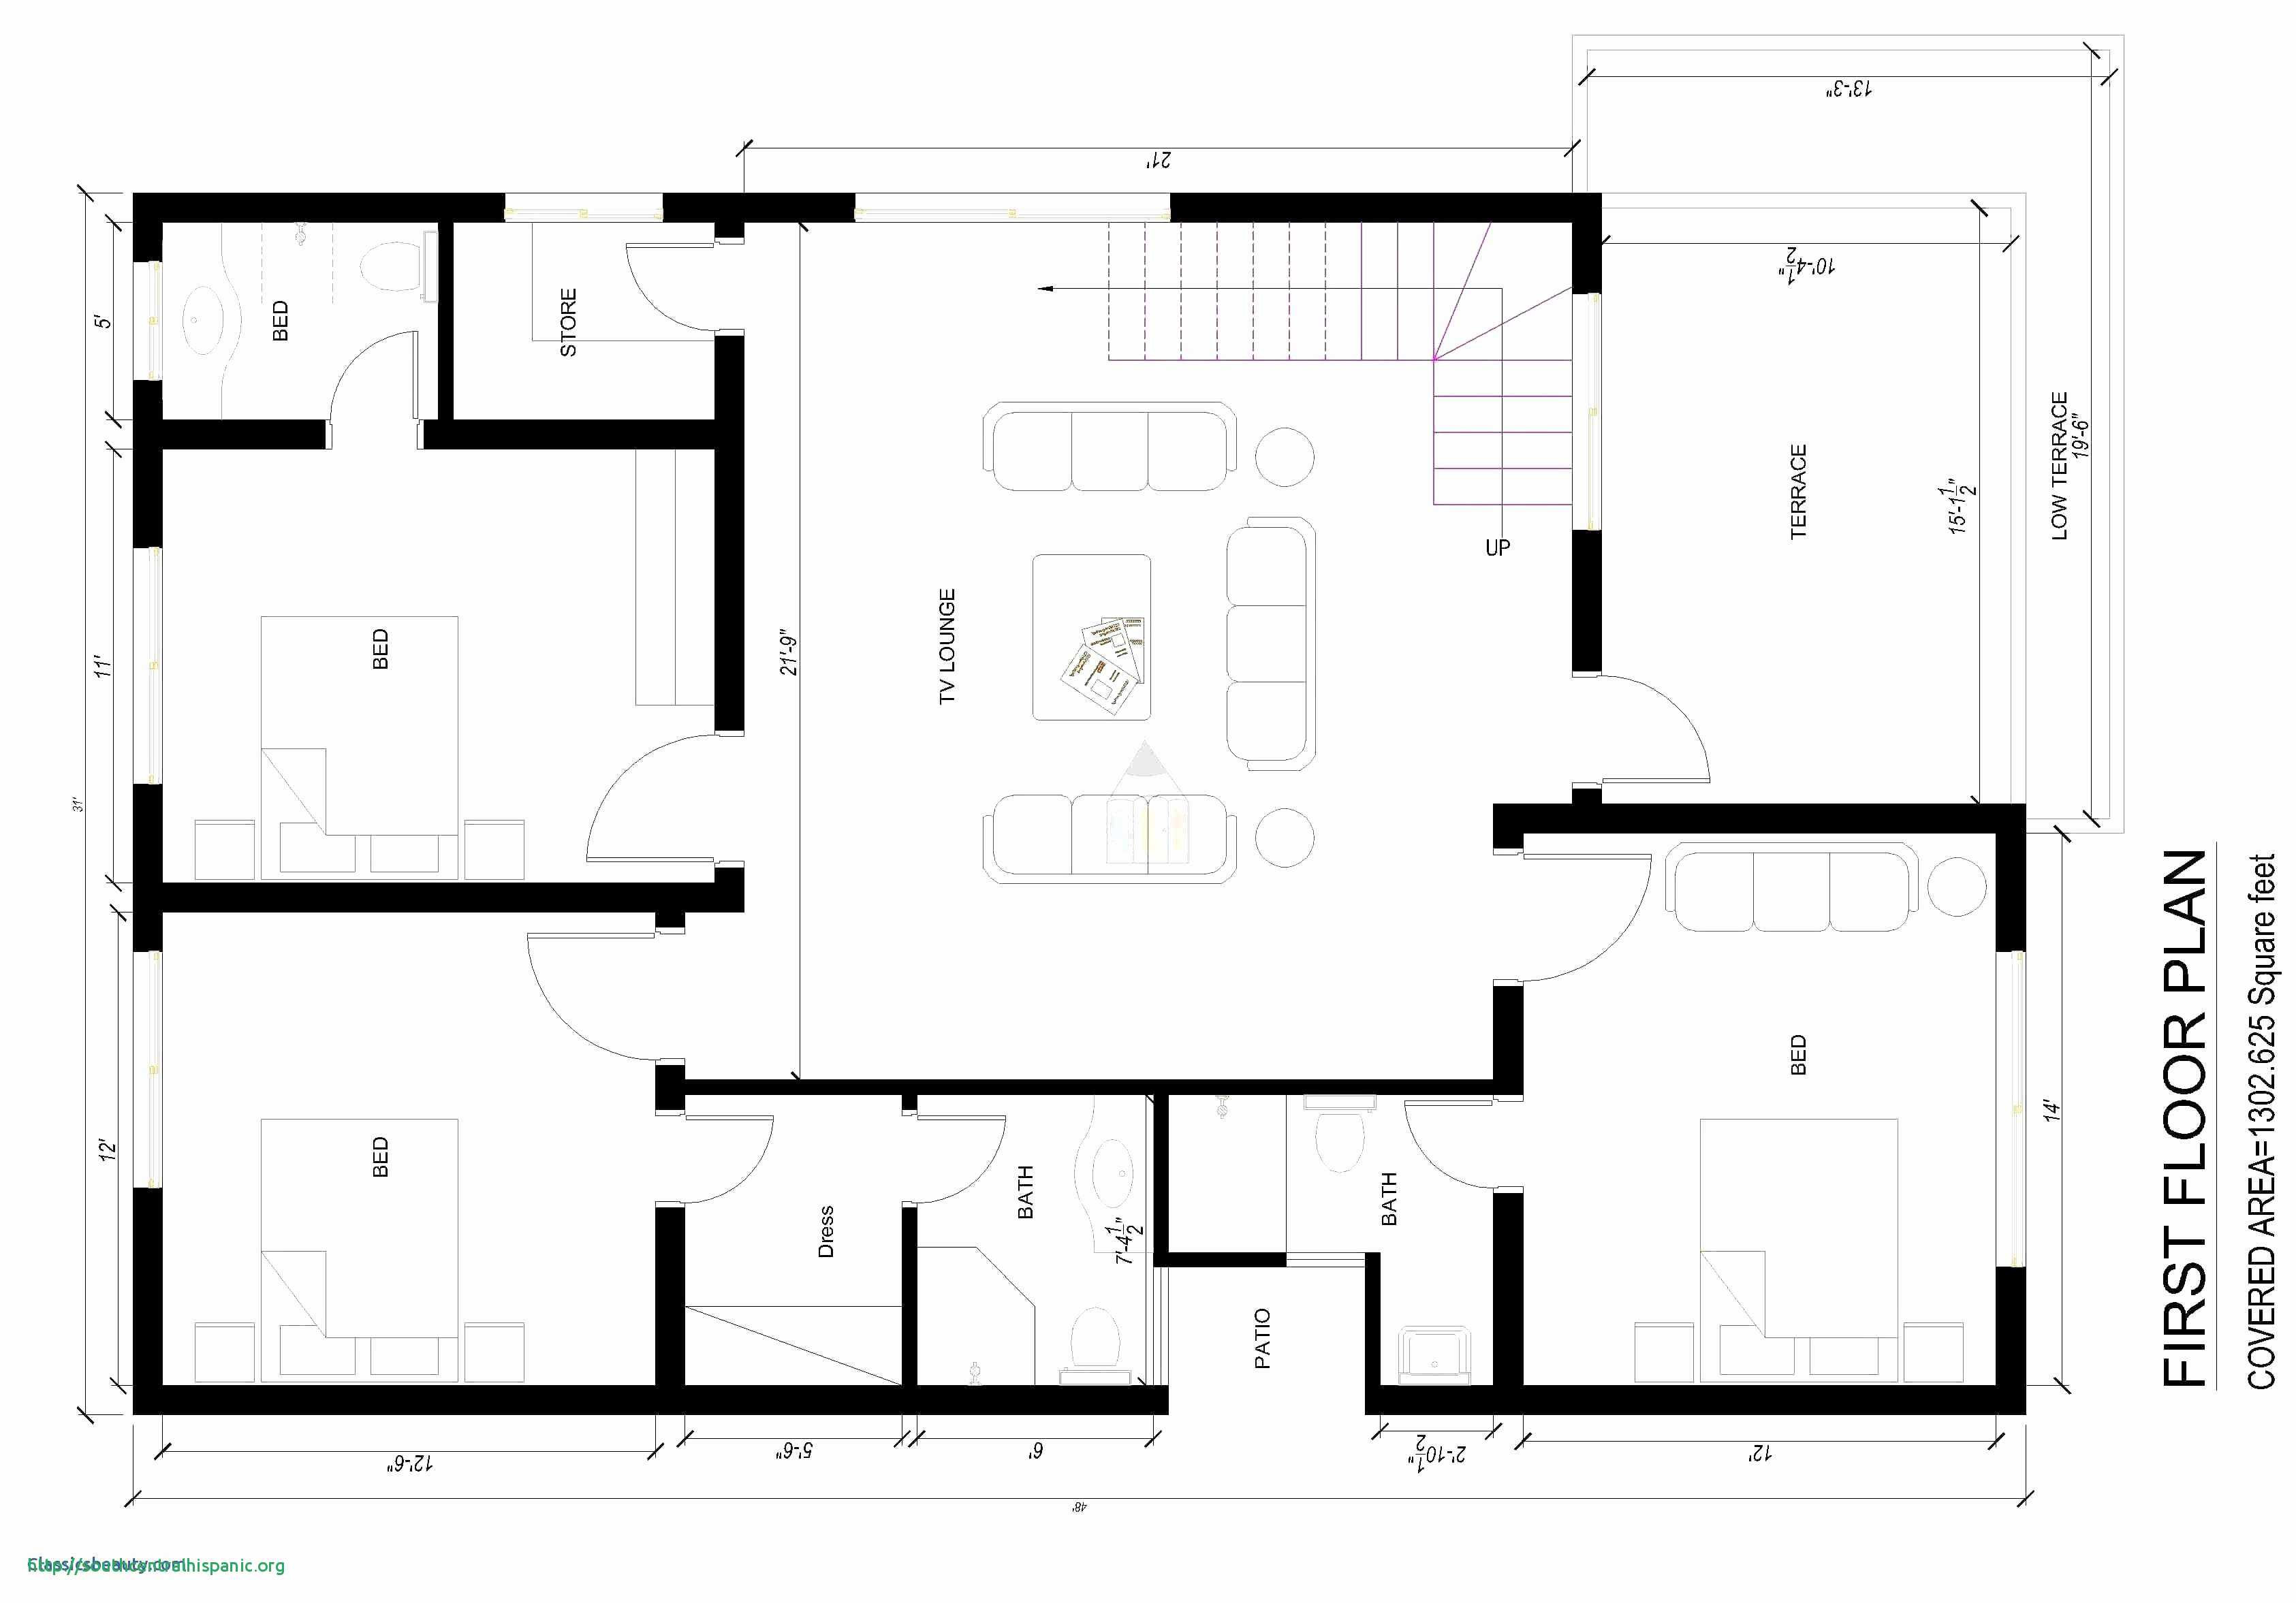 hgtv hardwood floors ideas of hgtv smart home 2014 floor plan luxe hgtv dream home 2014 floor plan inside hgtv smart home 2014 floor plan luxe hgtv dream home 2014 floor plan best hgtv home design house plans